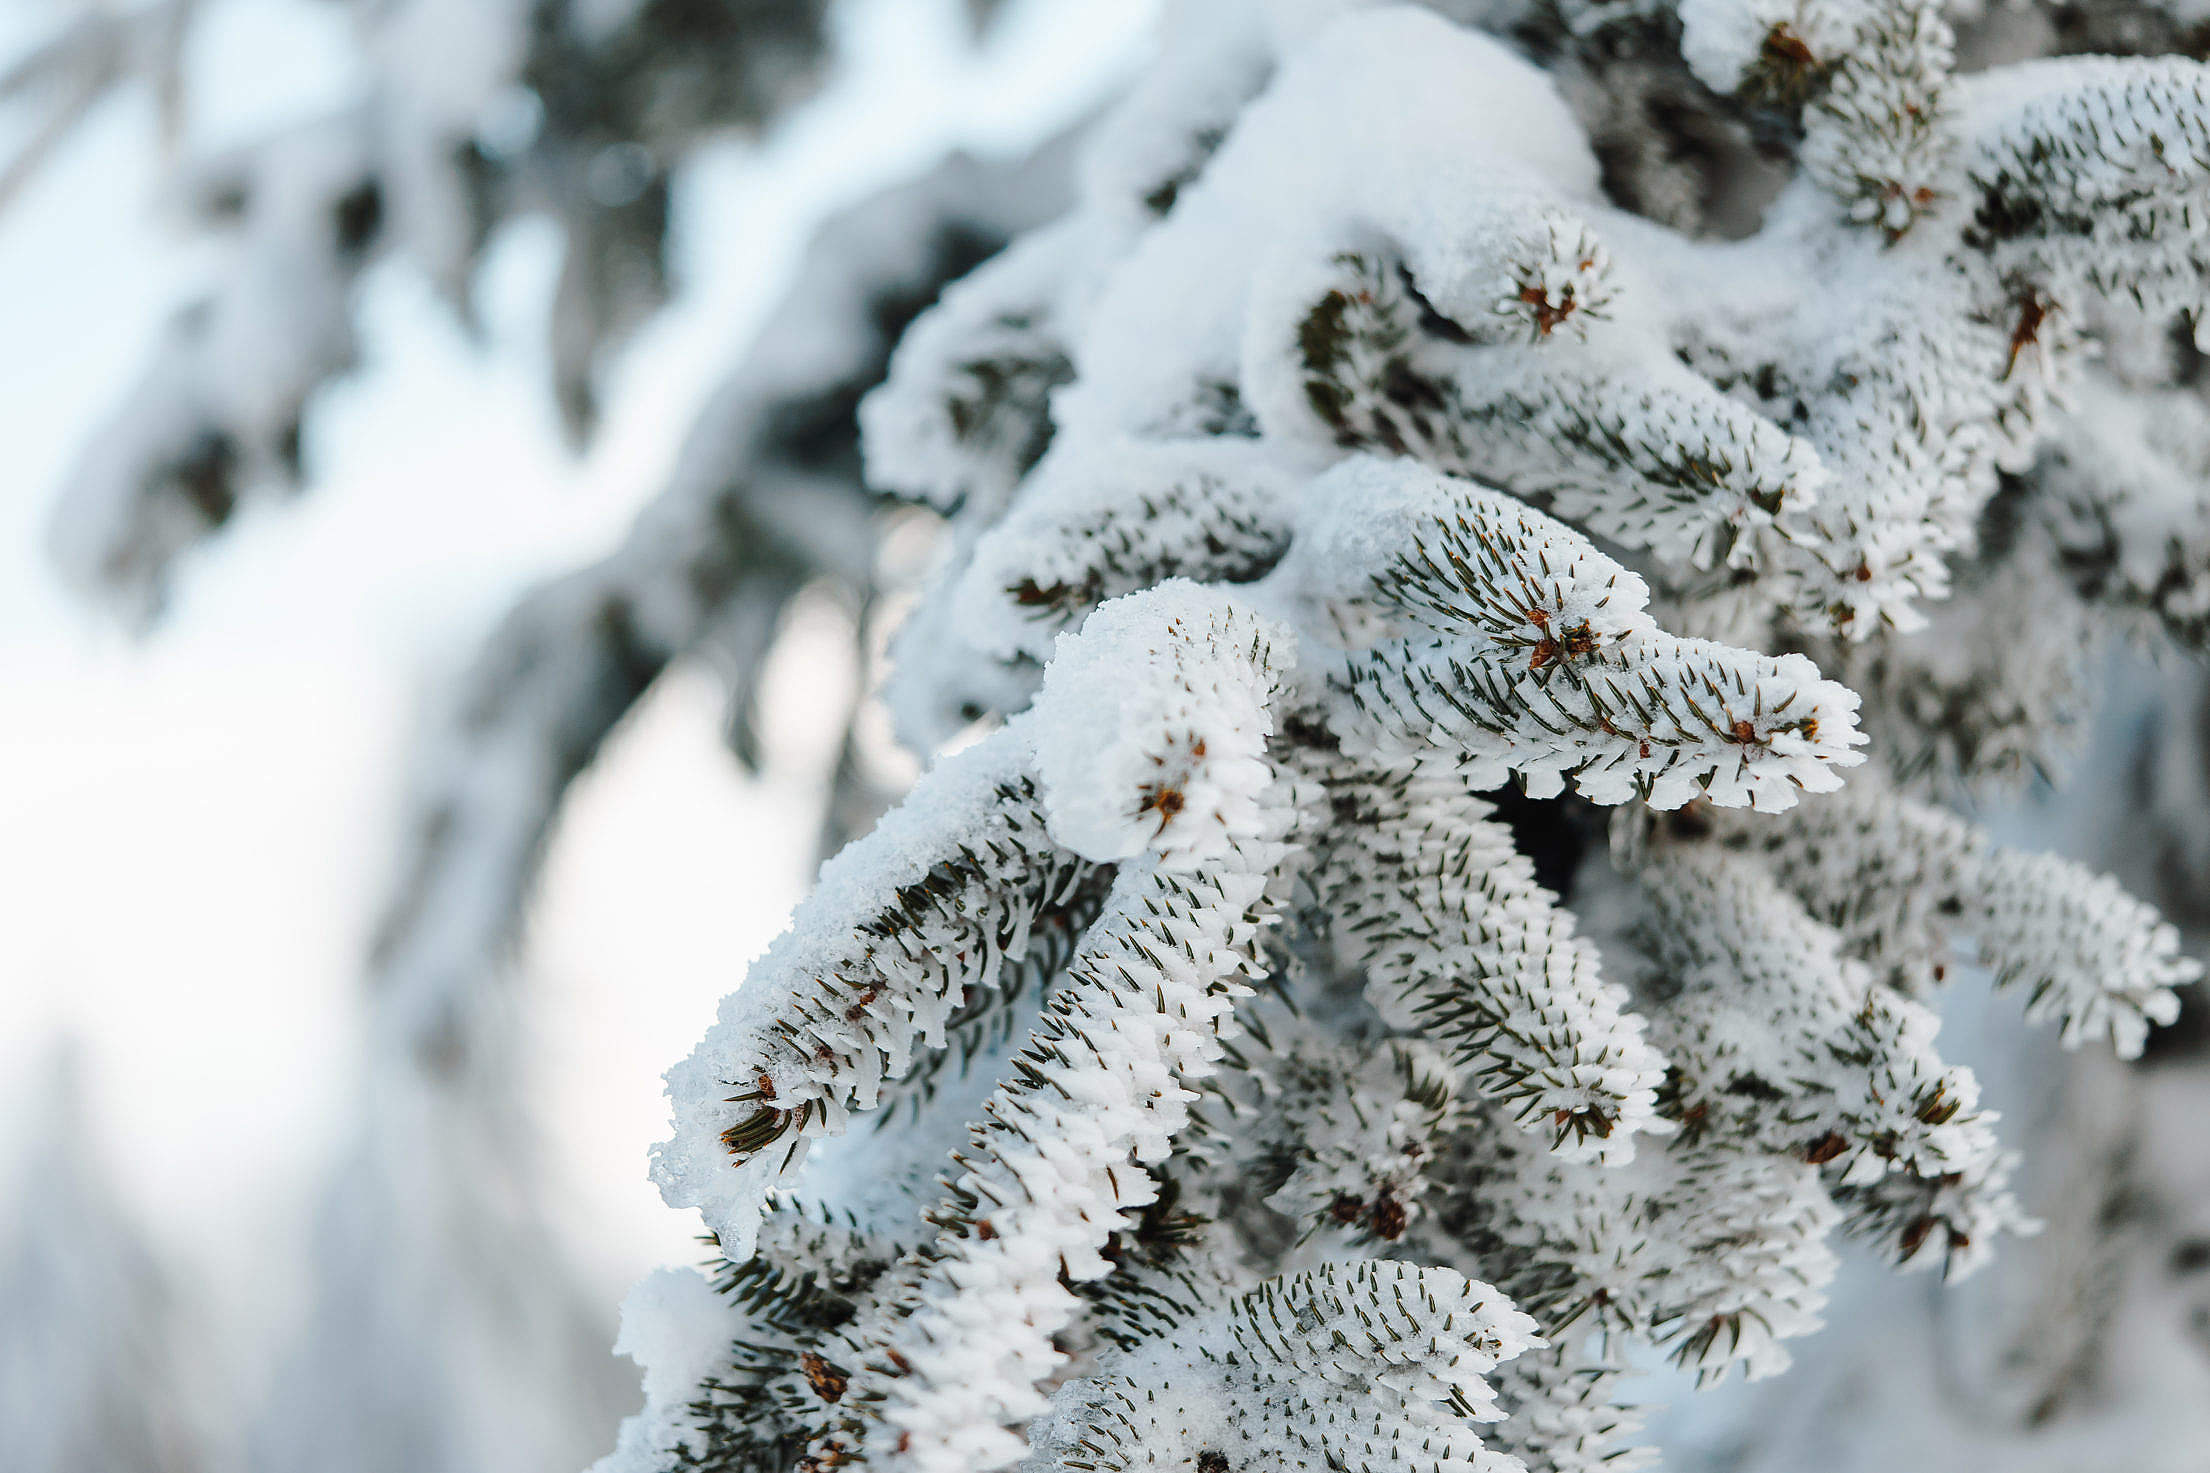 Tree Under The Snow in Winter Free Stock Photo